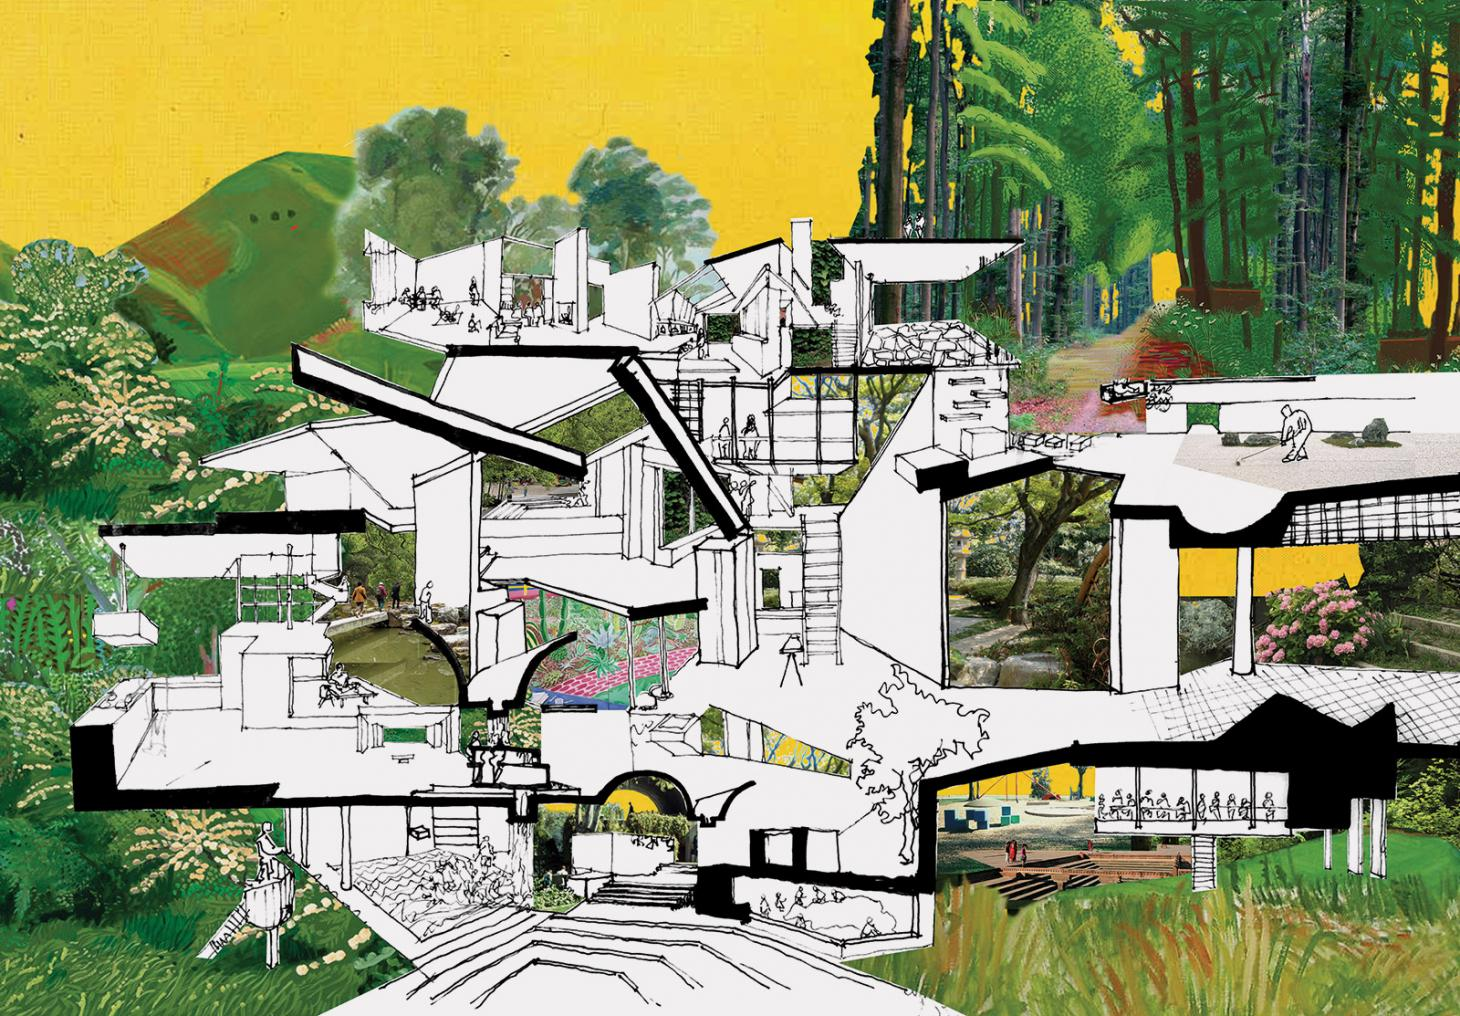 Is This Tomorrow? Artists and architects revisit Whitechapel Gallery's seminal postwar exhibit